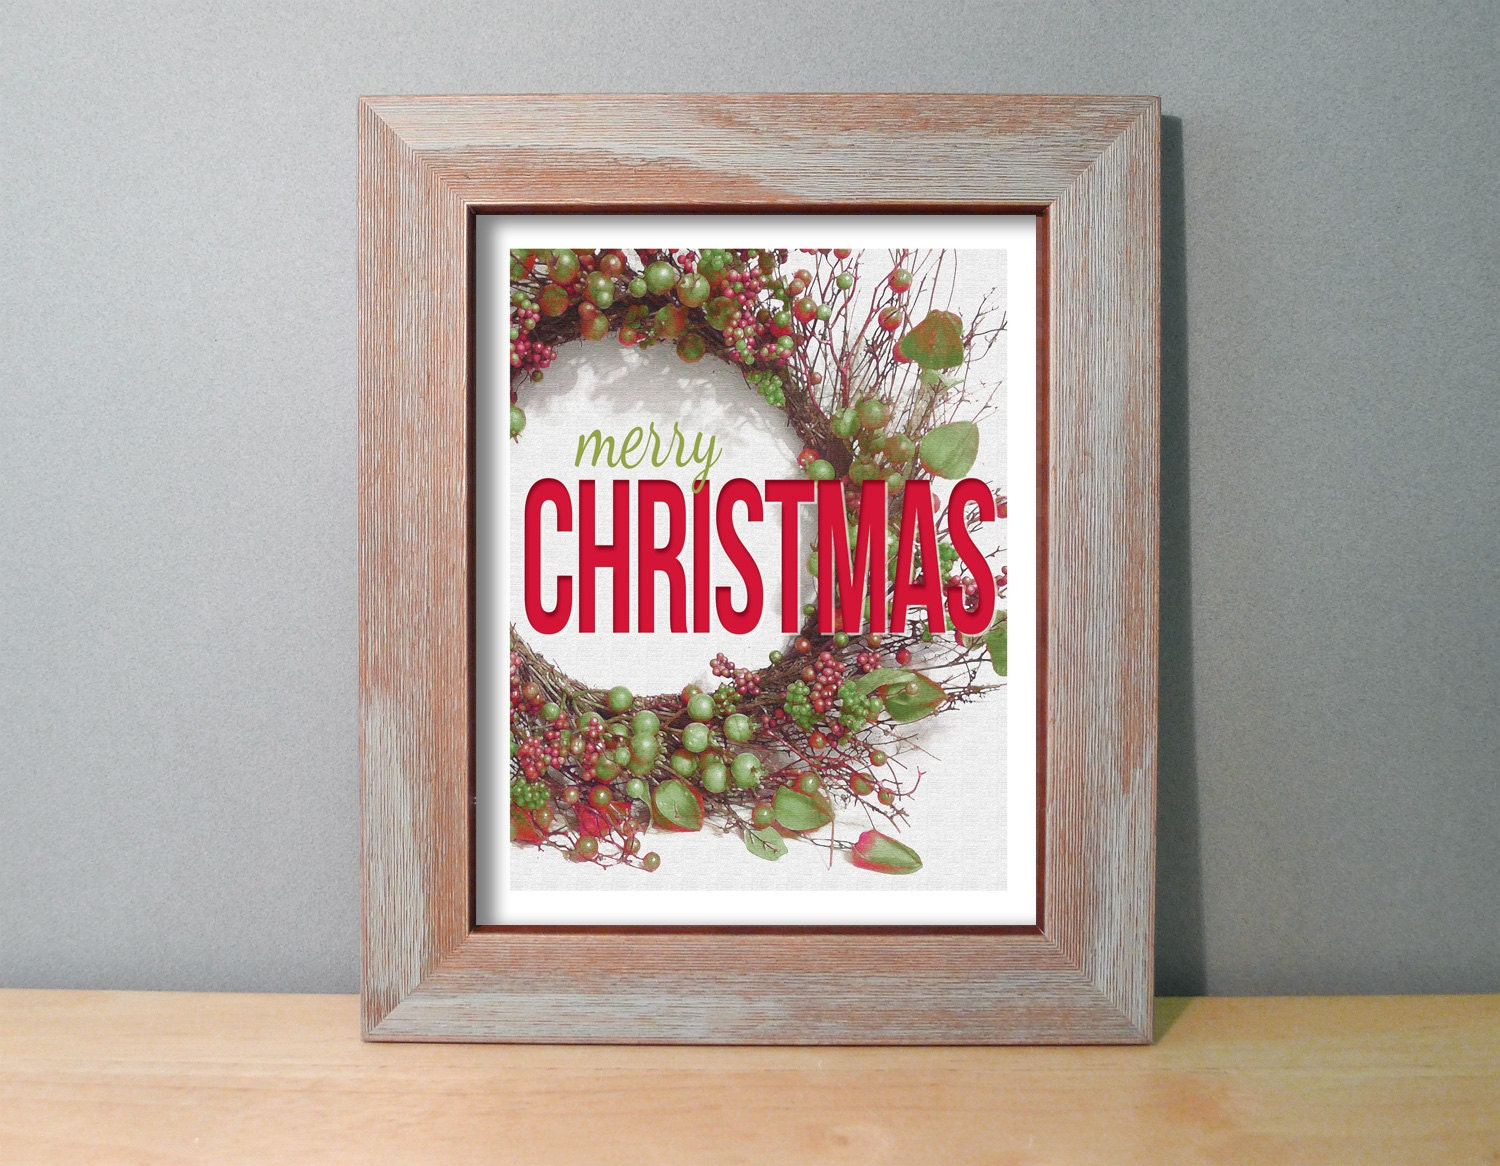 Wall Decor Under 20 : Christmas gifts under merry sign